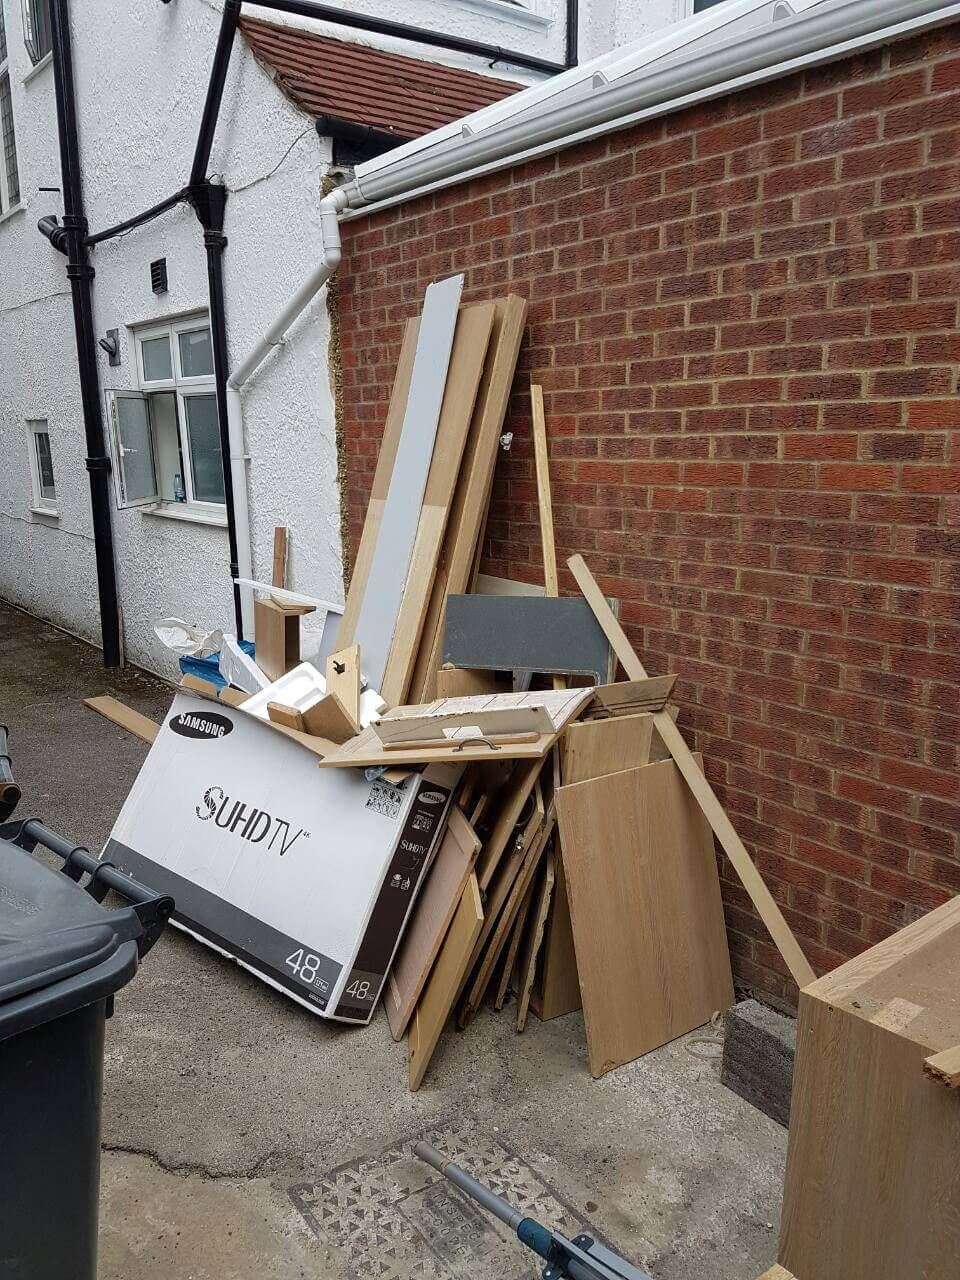 Leatherhead waste removal KT24